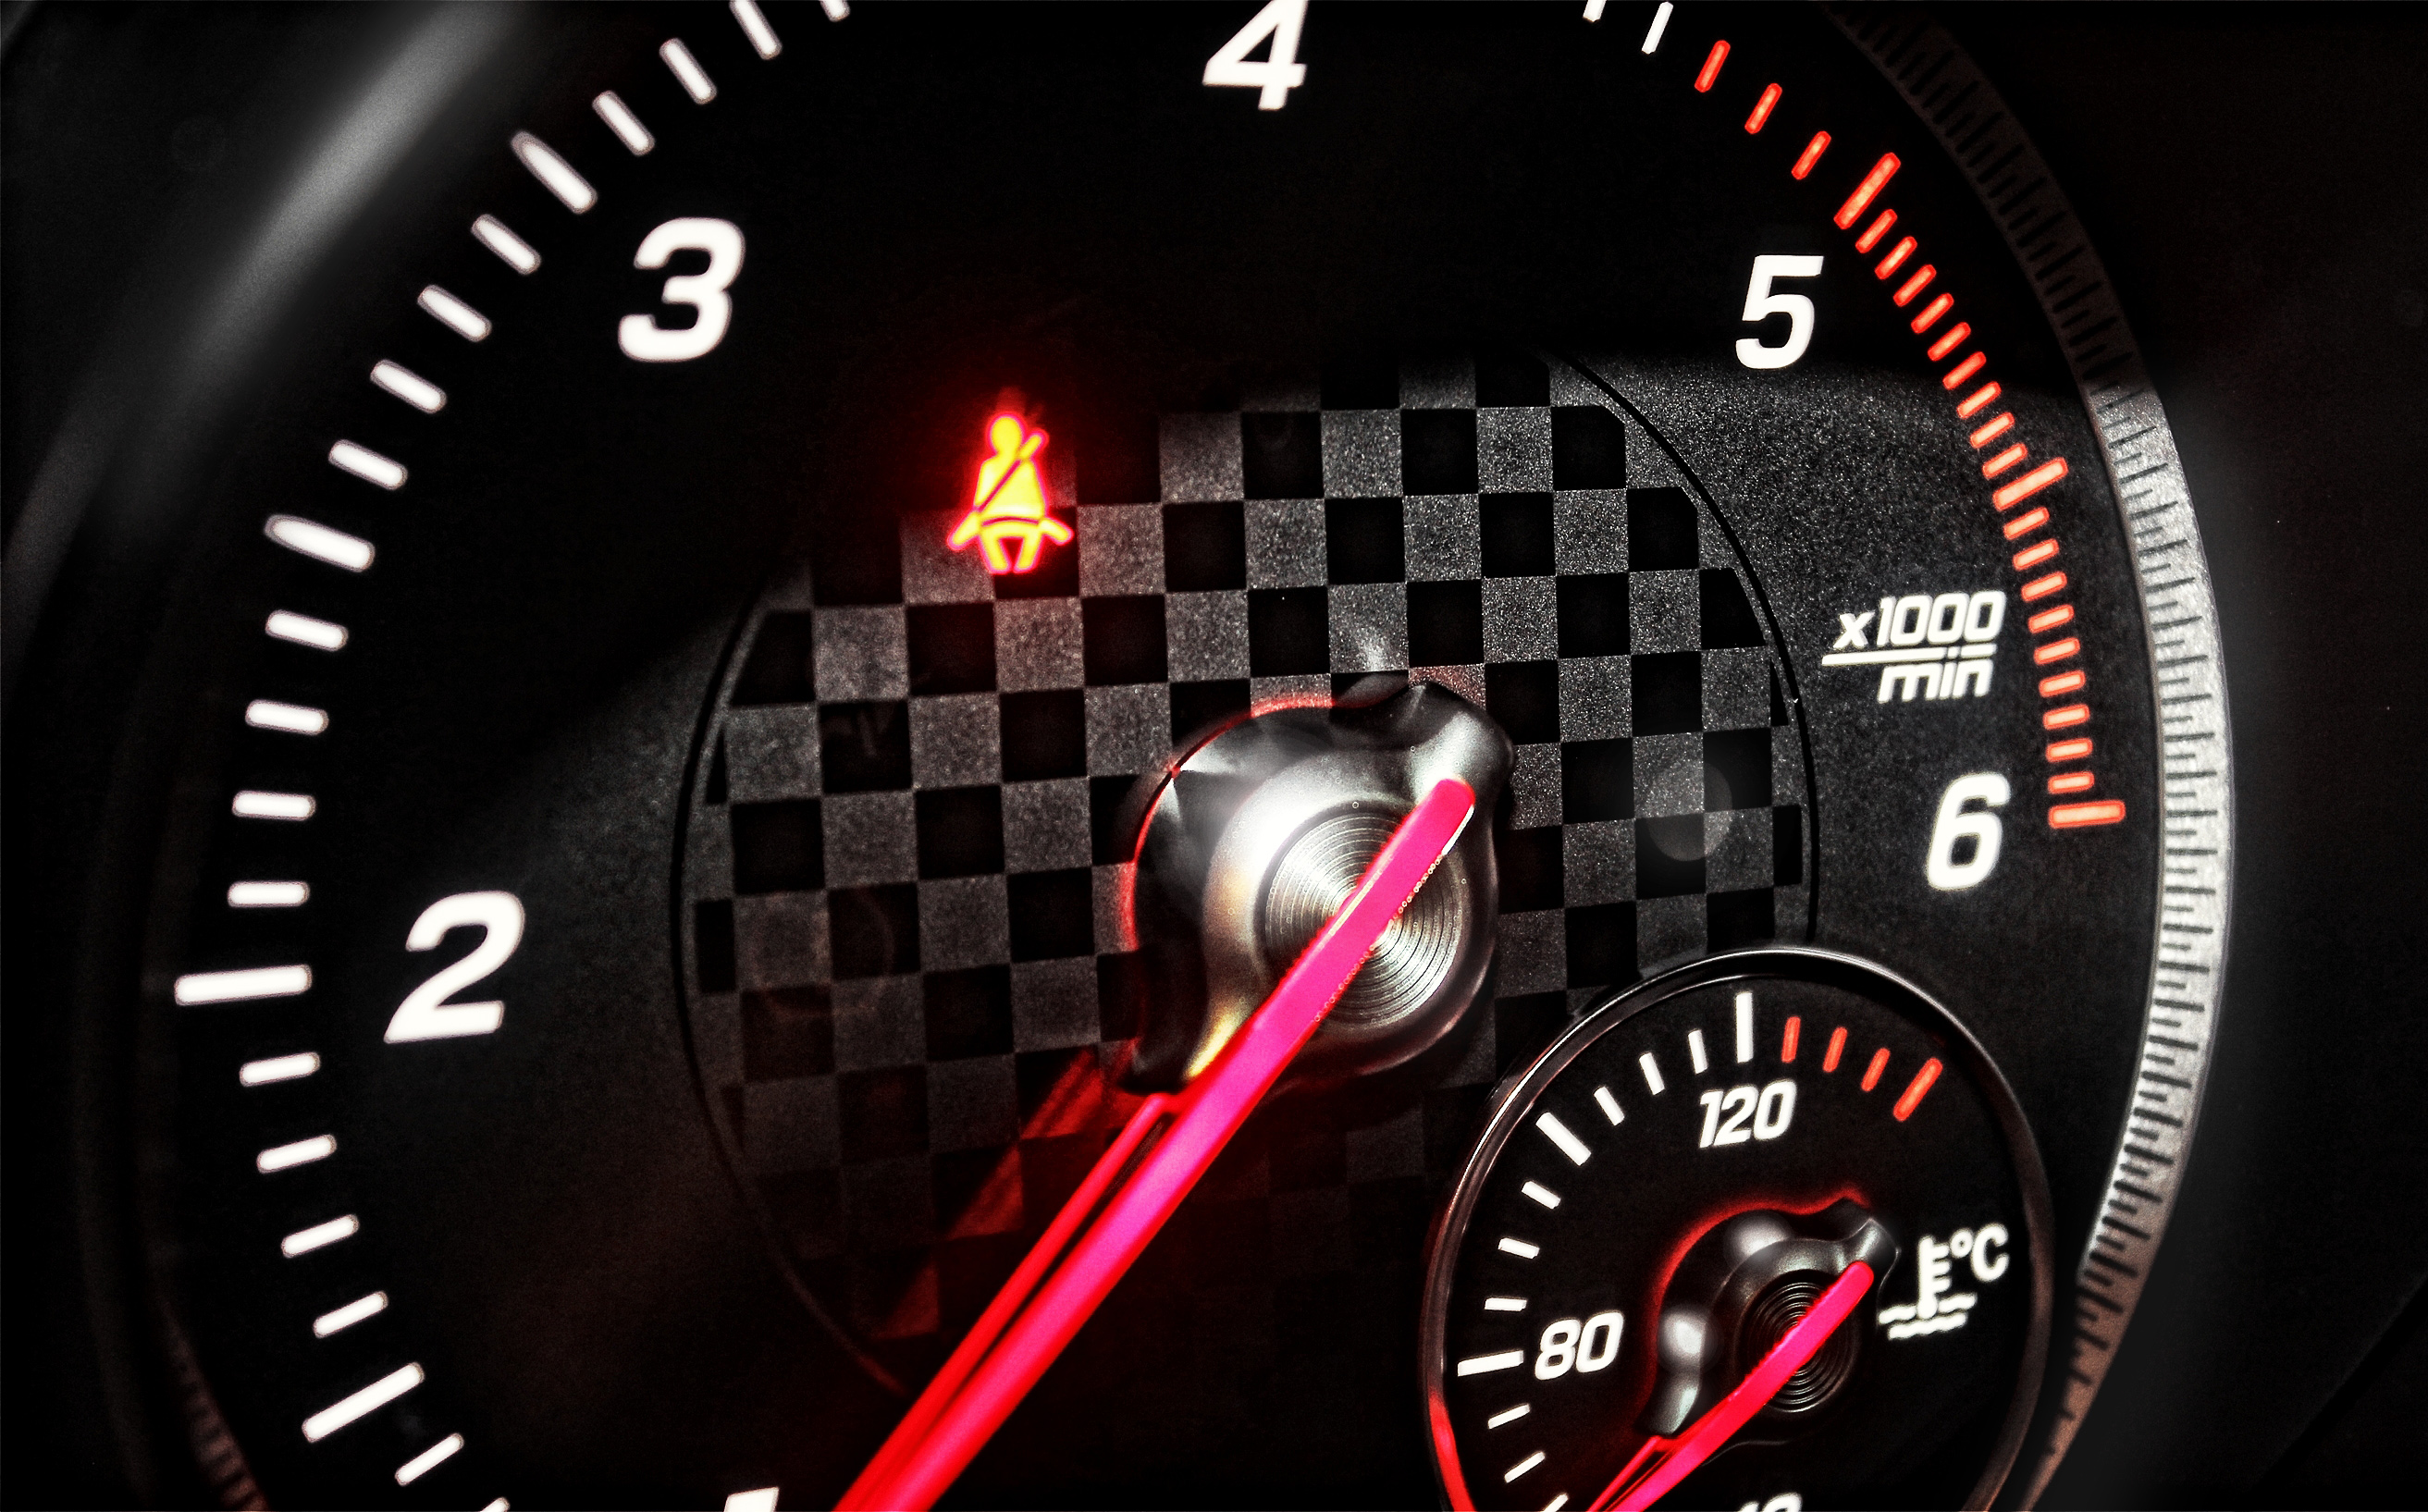 Sports car rpm gauge speeding photo